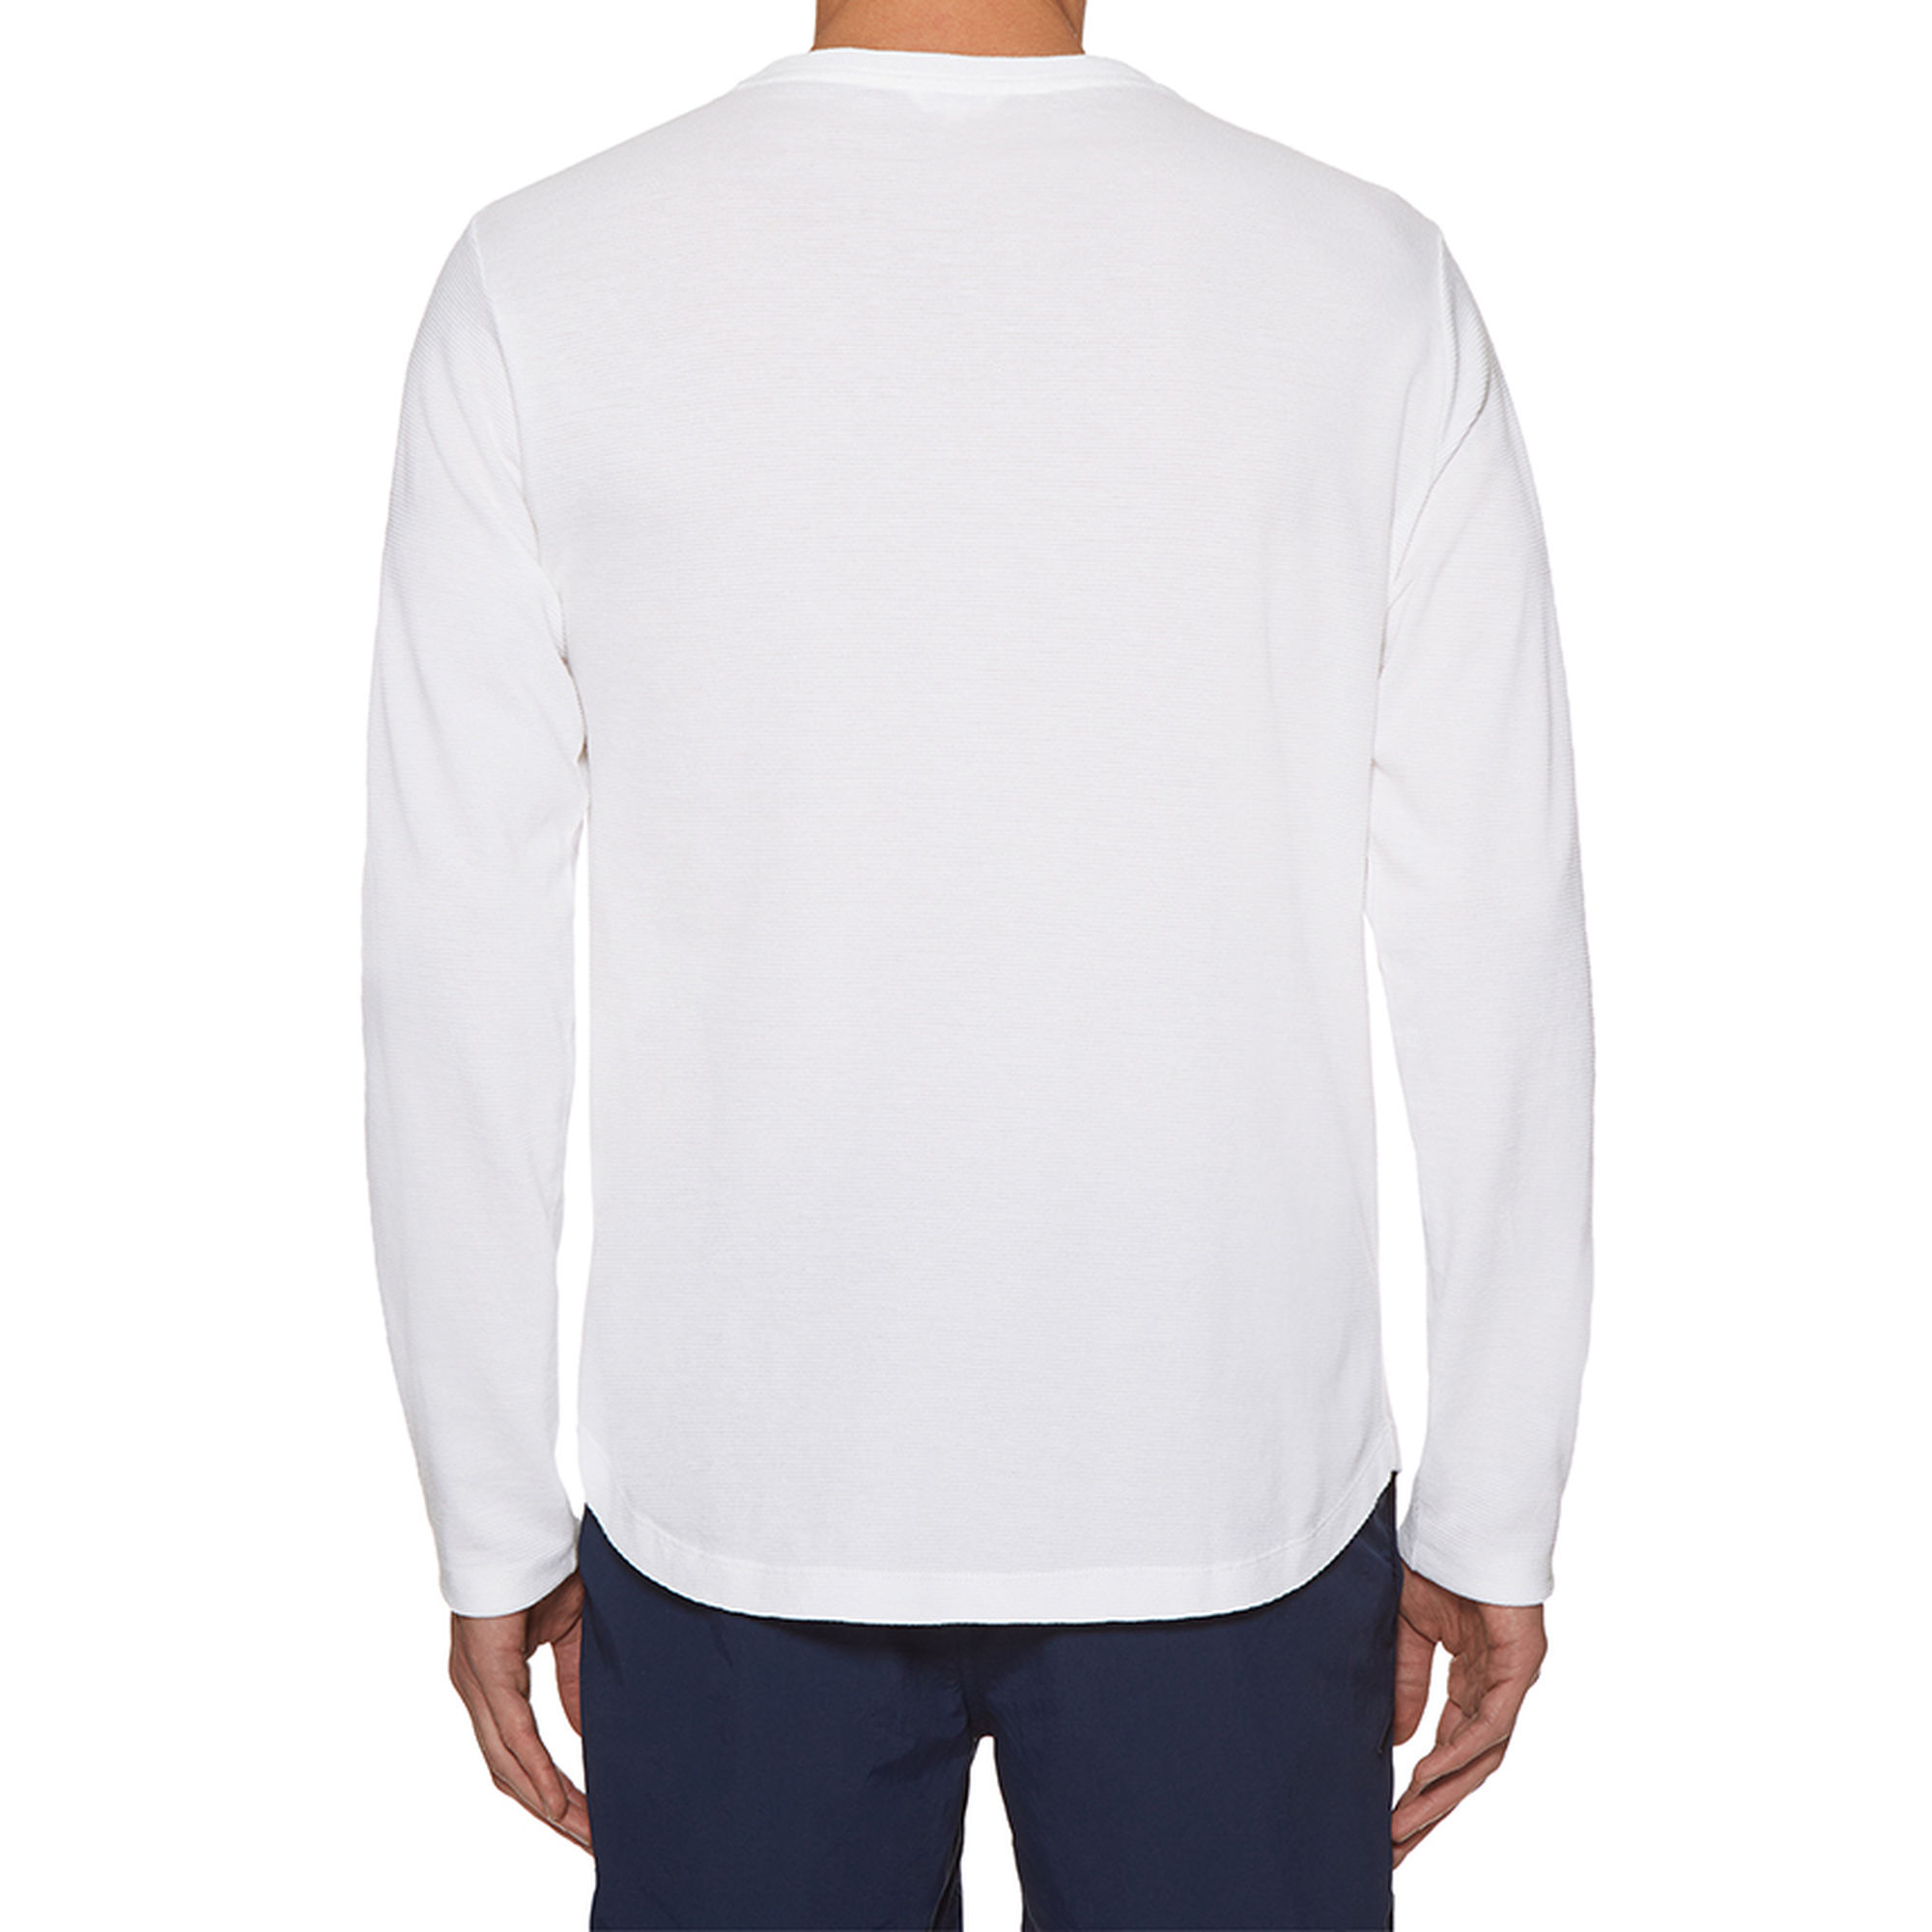 Orlebar Brown OB-T WAFFLE COTTON White Tailored-Fit Crew-Neck T-Shirt